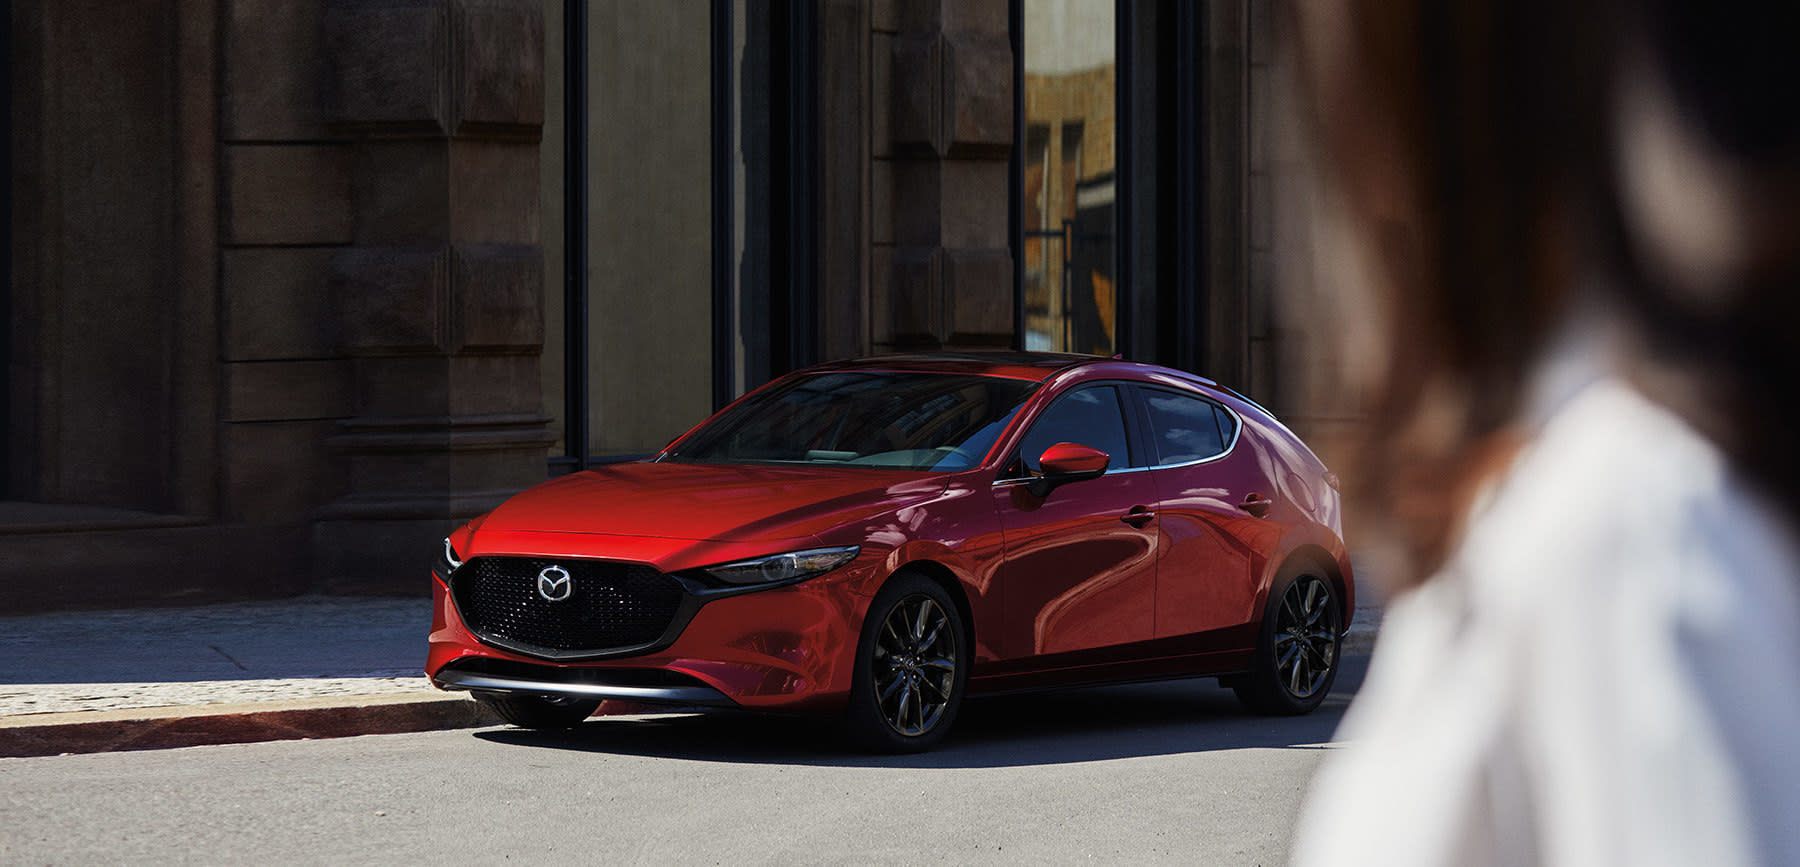 2020 MAZDA3 Sedan vs 2020 MAZDA3 Hatchback – What's the Difference?